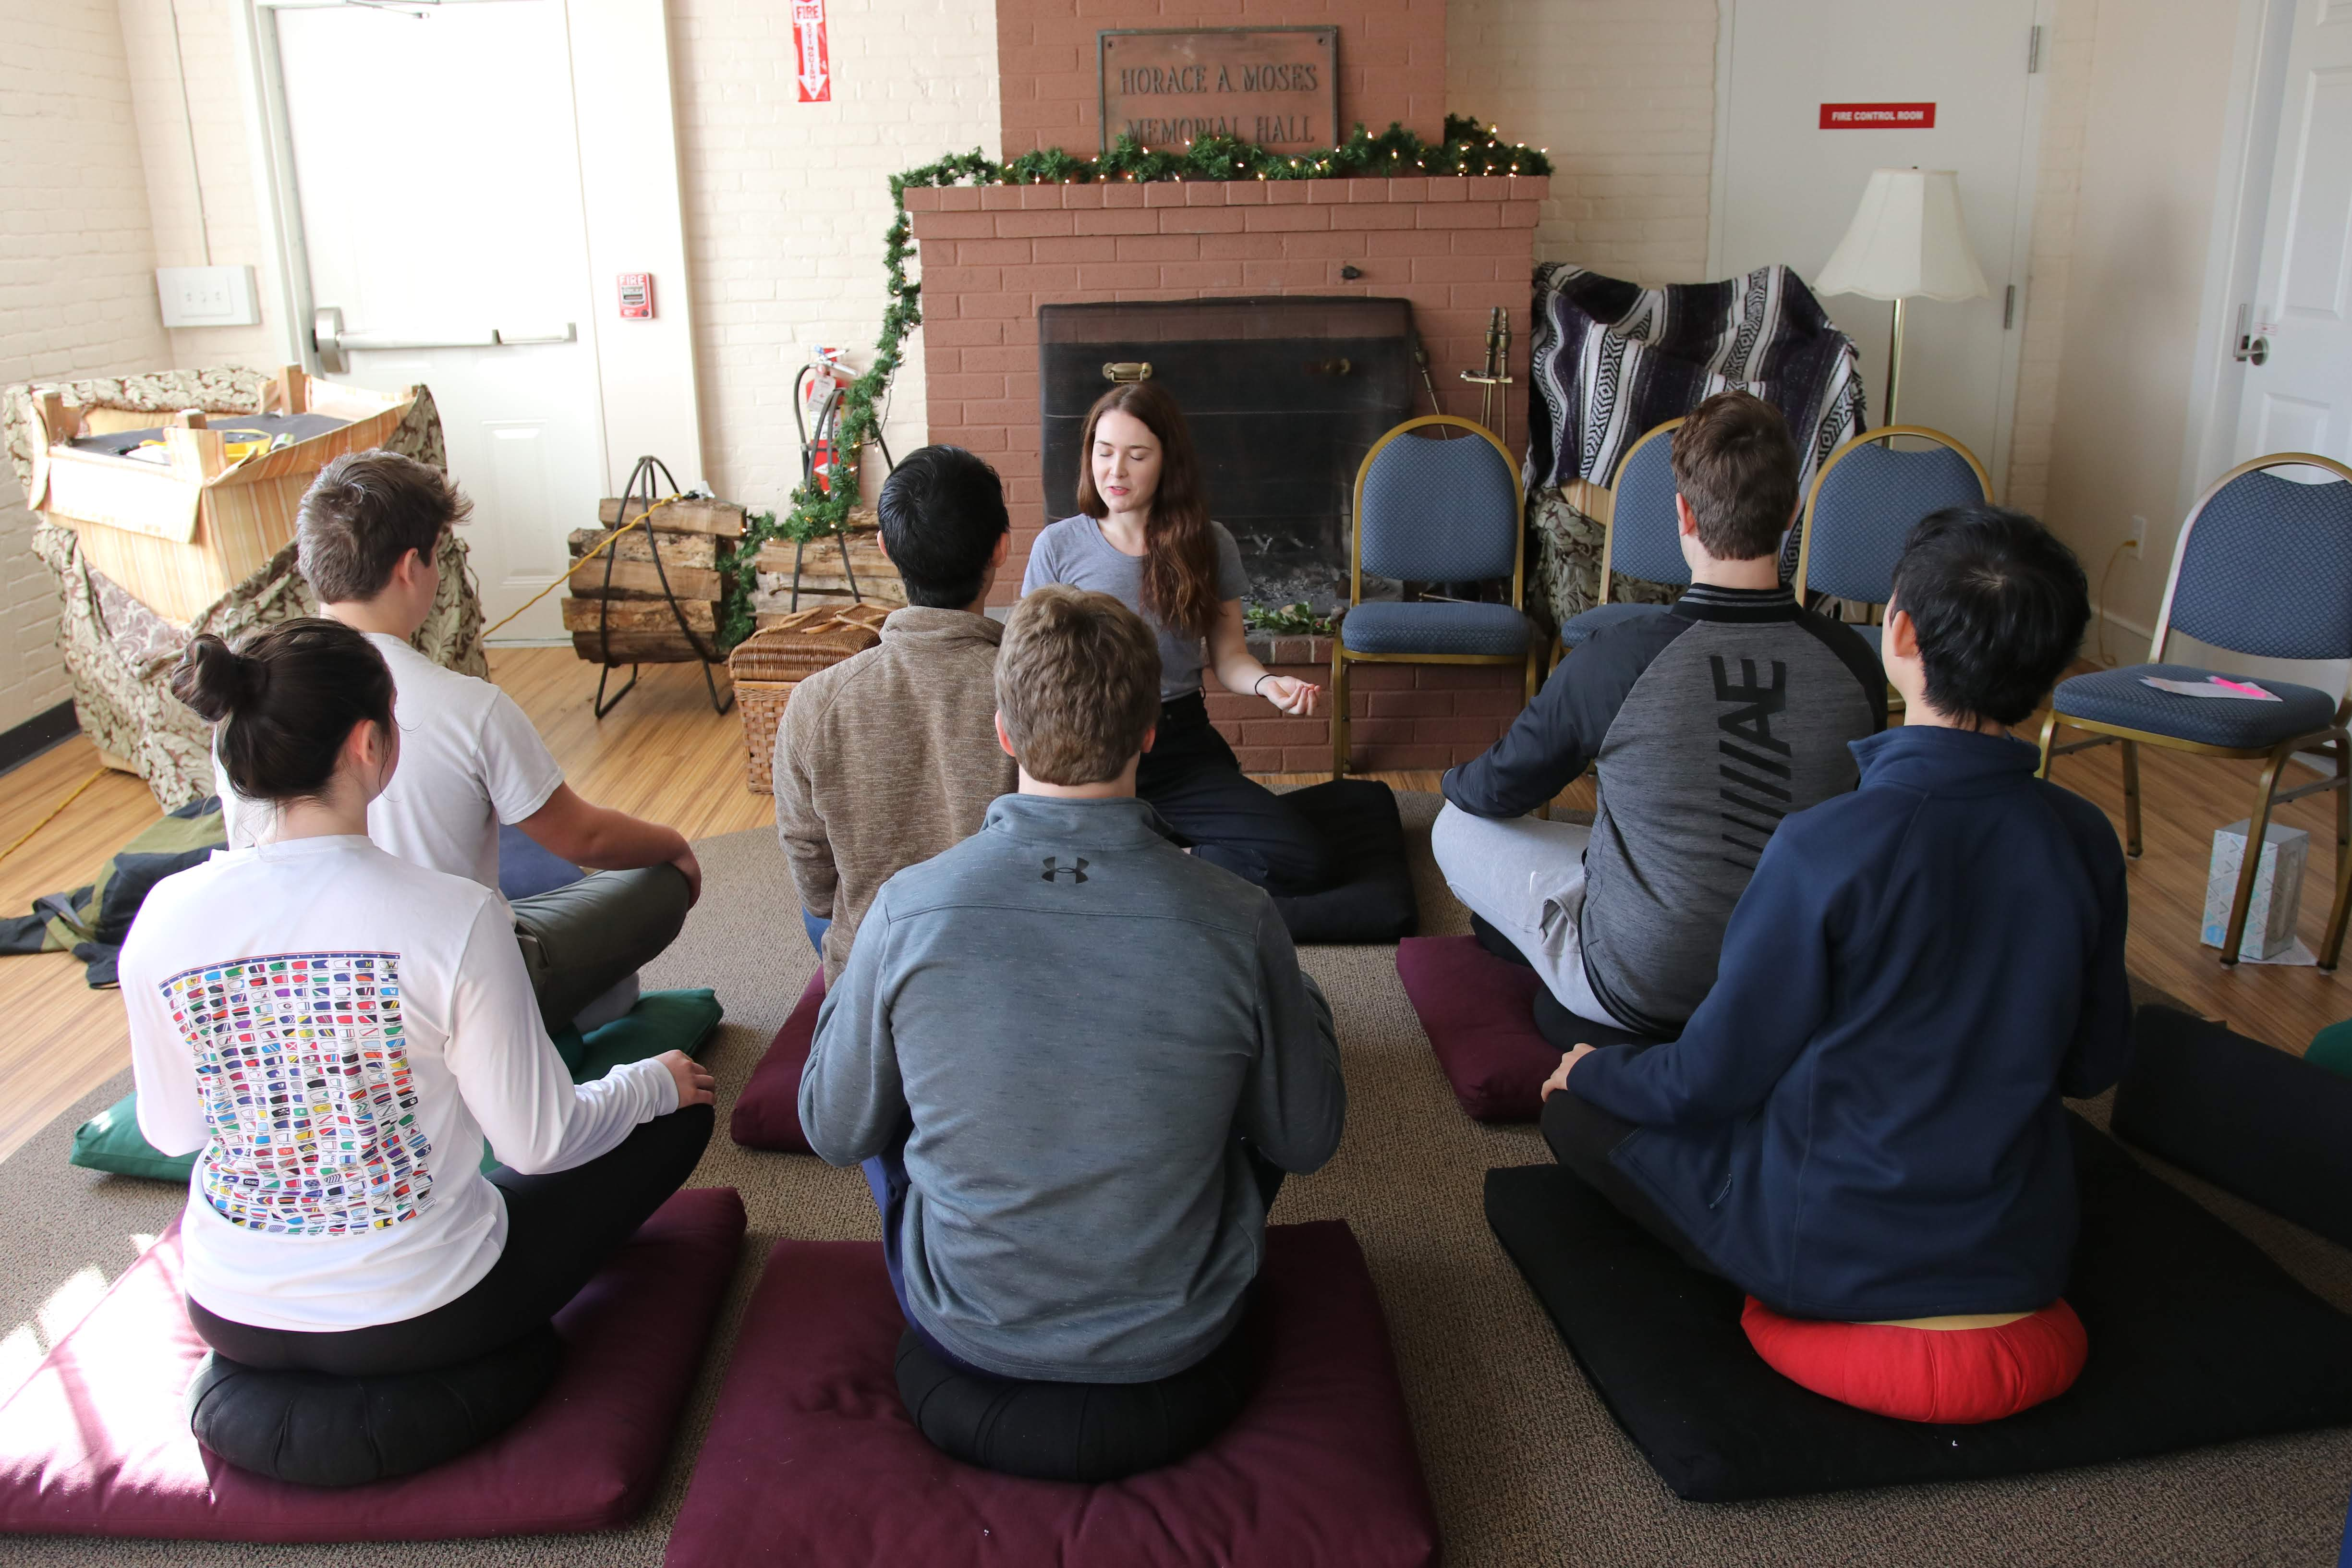 Summer Program - Group Discussions   iBme: Mindfulness Retreats for Teens